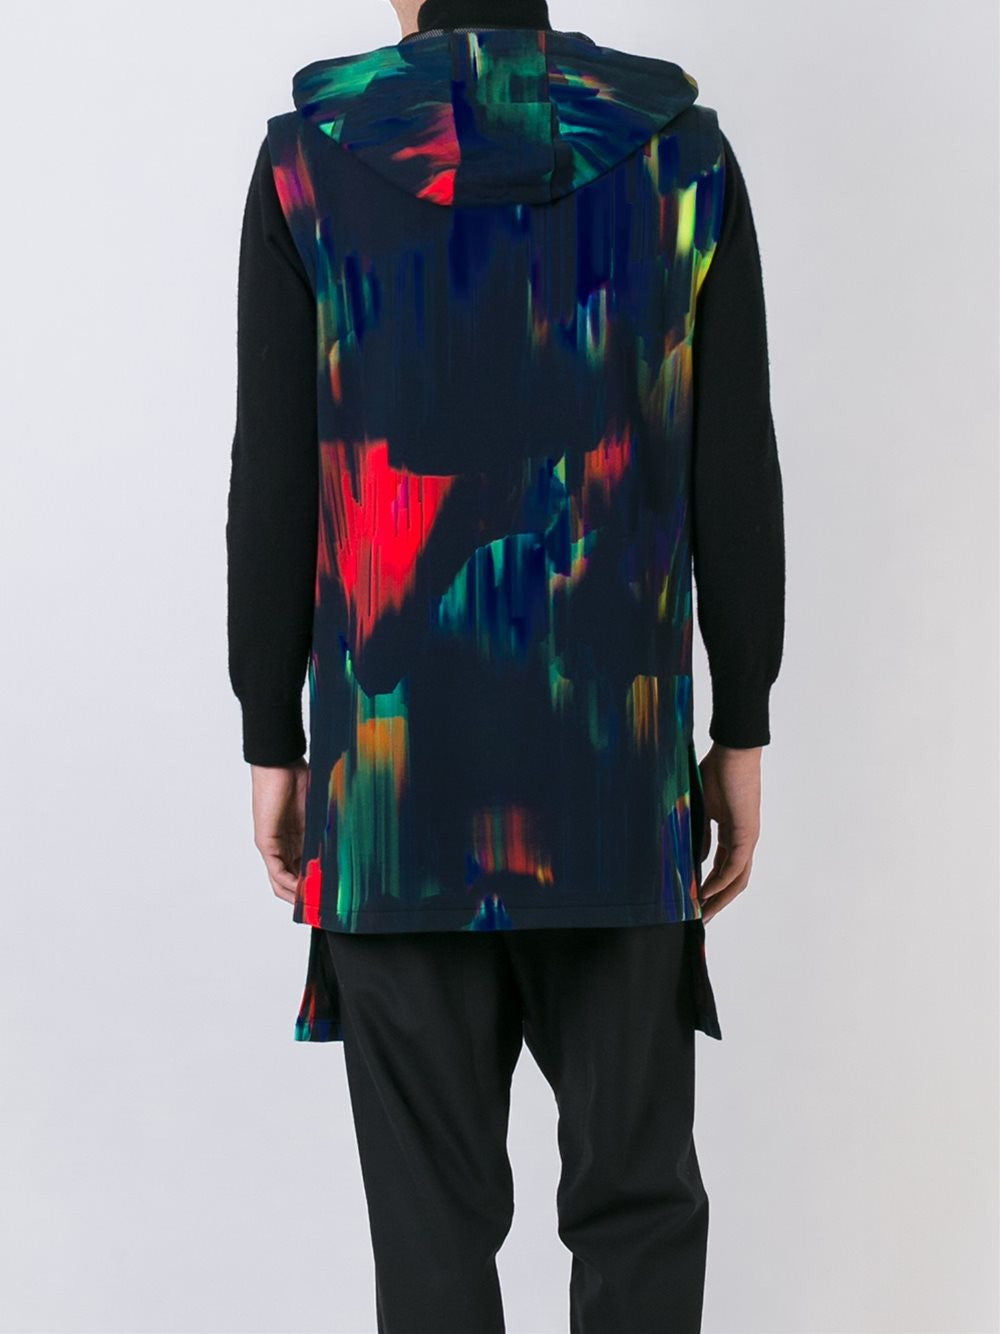 Abstract Runner's Vest | B47558 AOP FT CU